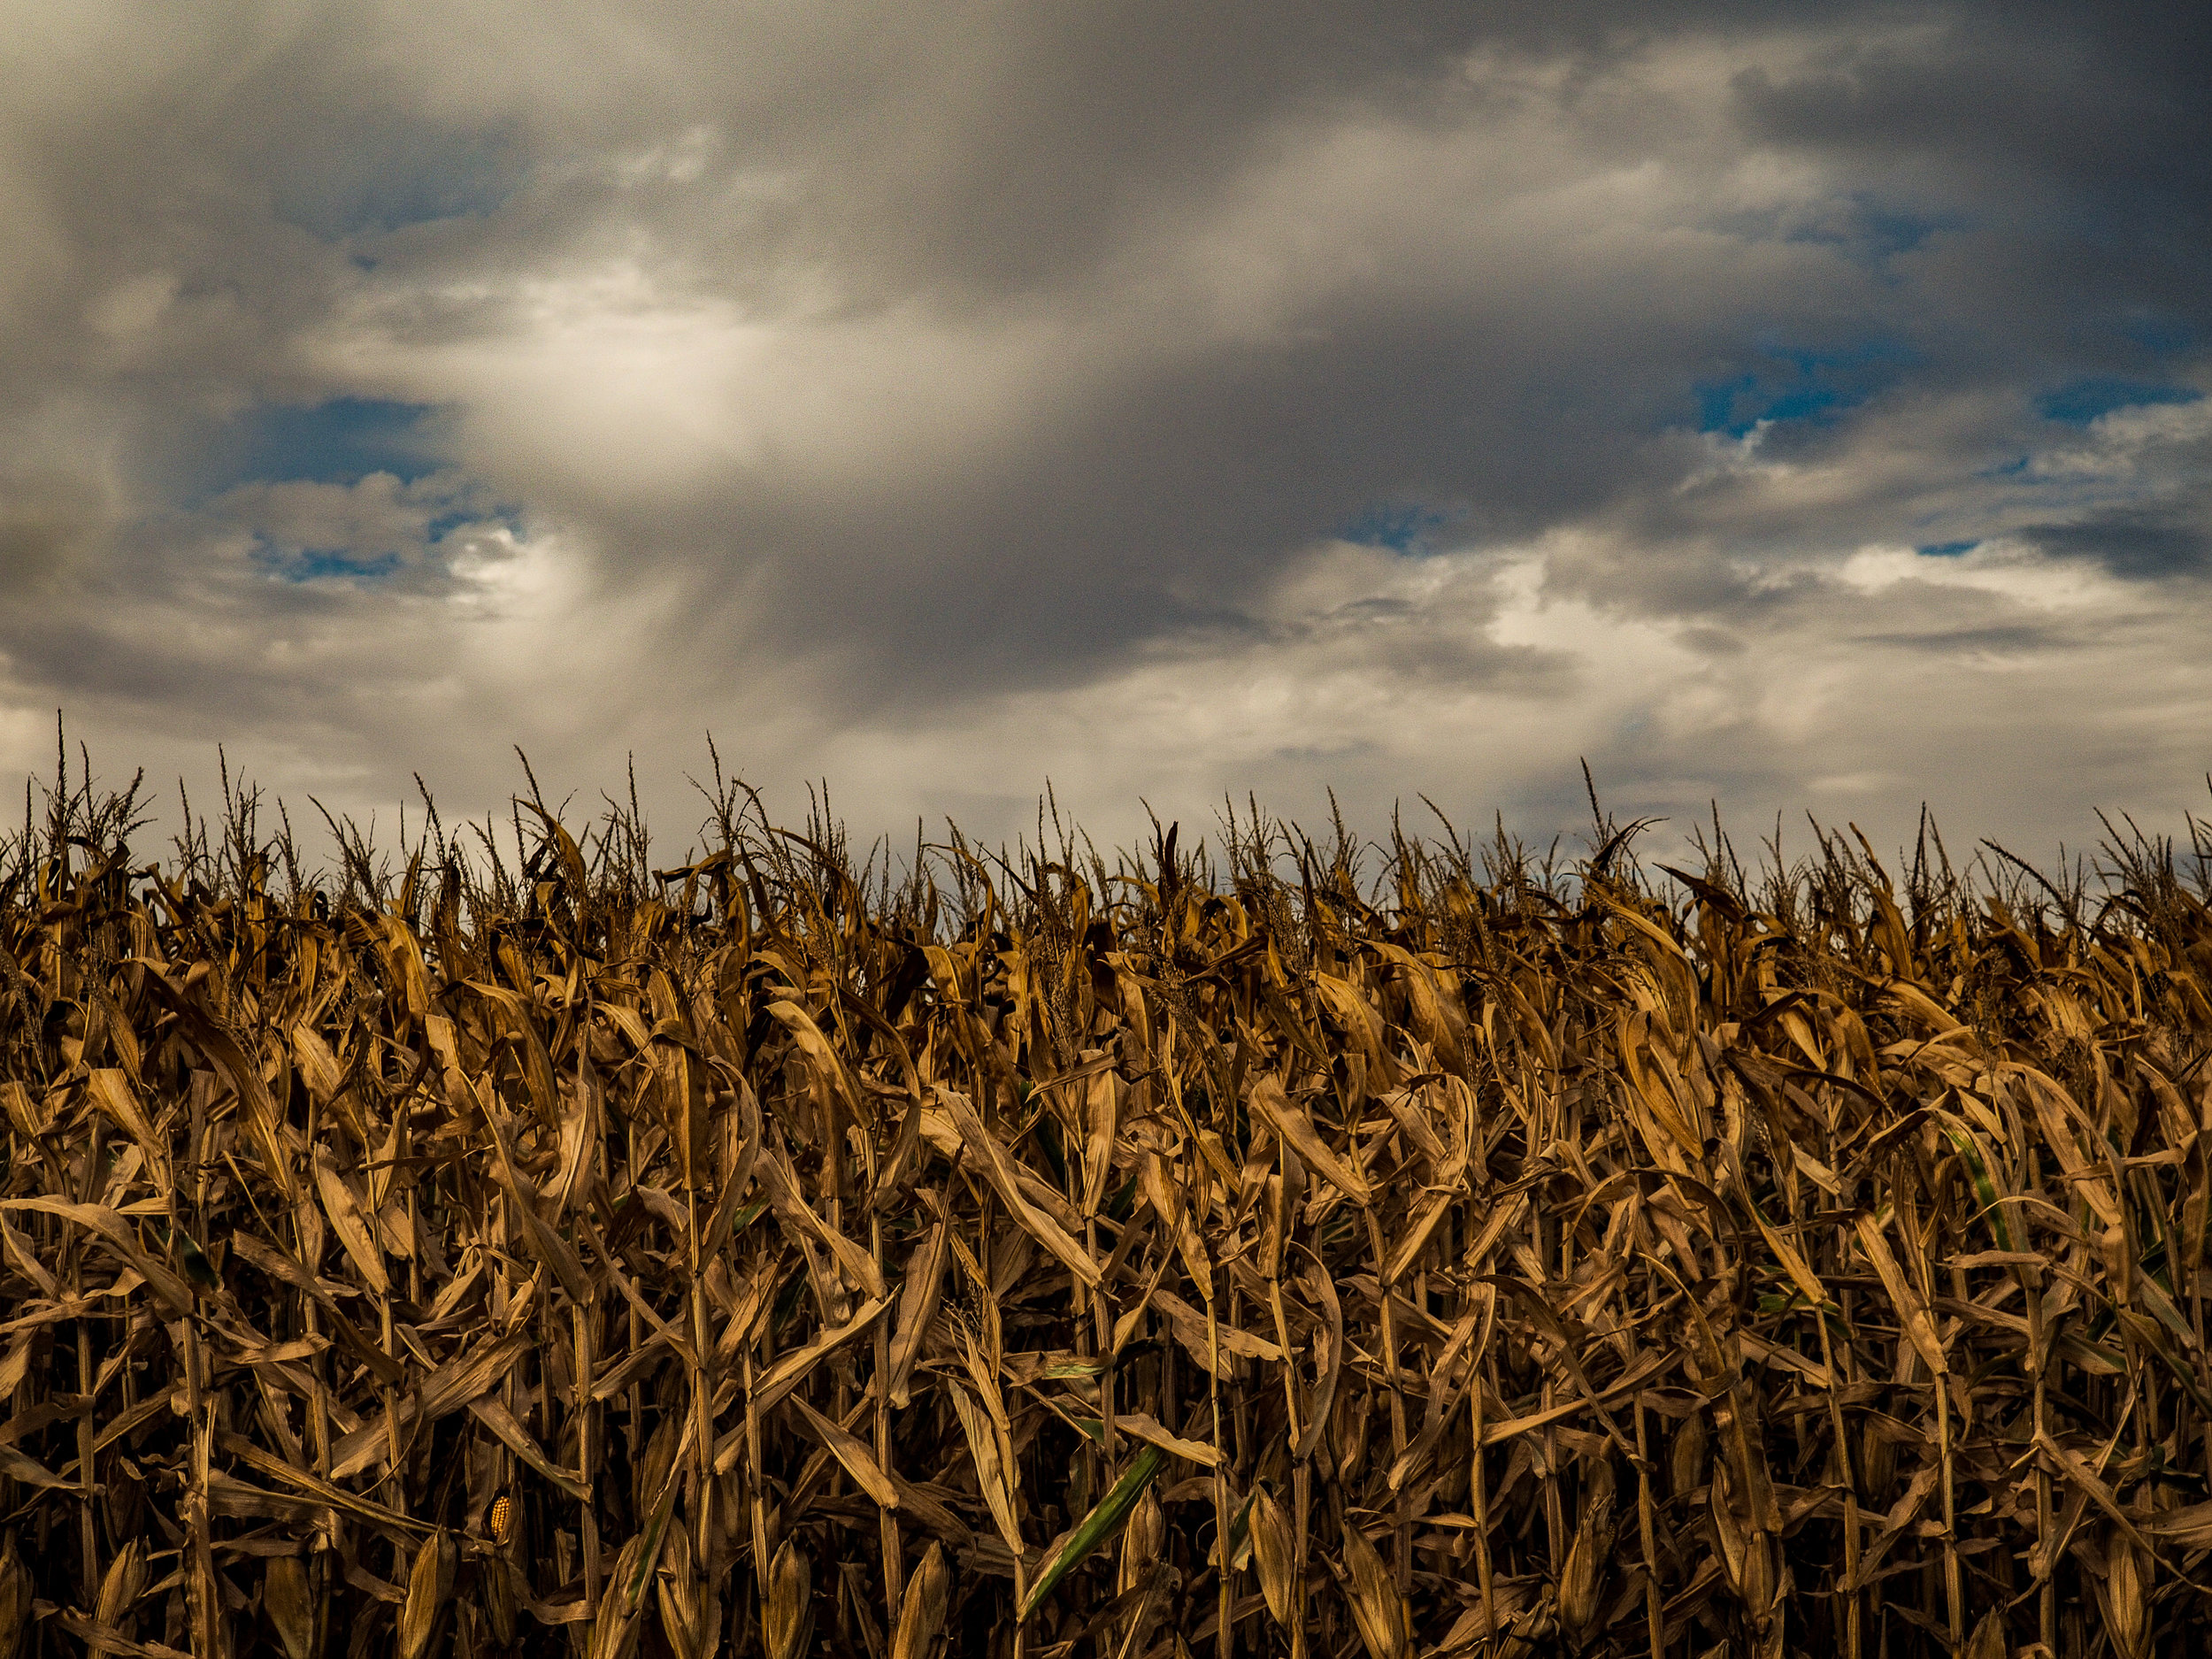 Harvest Time and Clouds